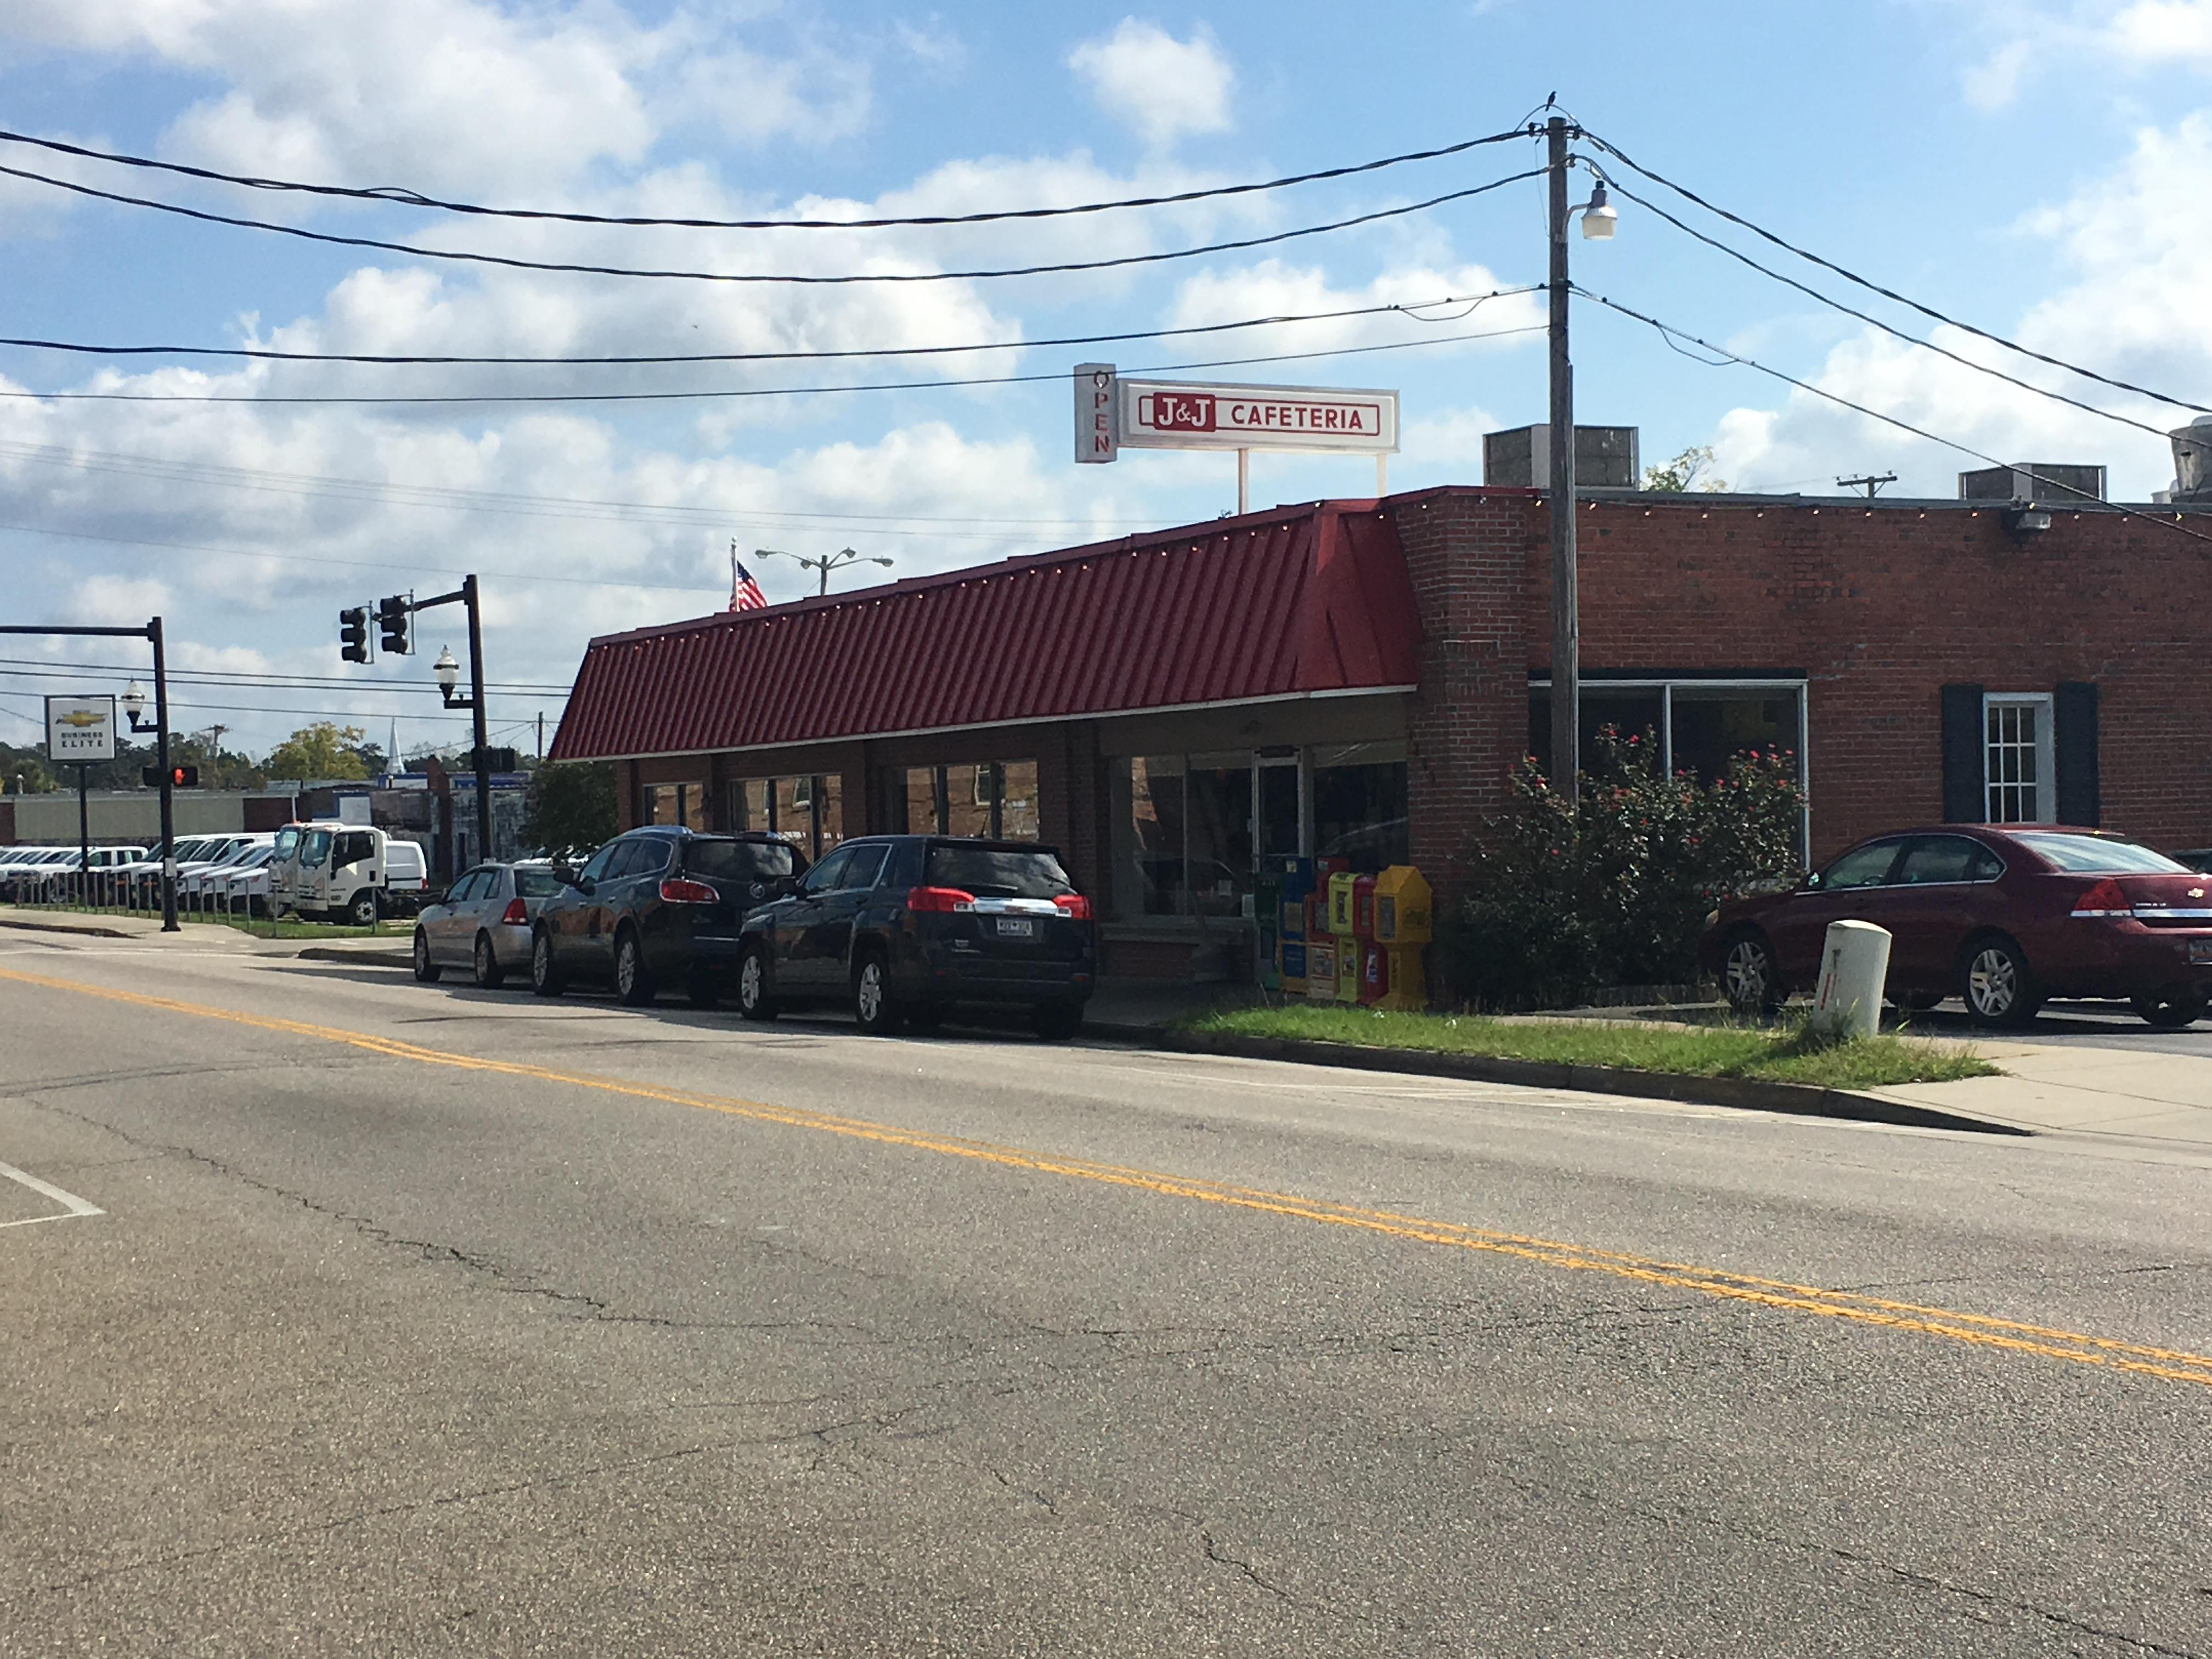 Lawyers for Christopher Smith claim Bobby Edwards abused him while working at J &amp;amp; J Cafeteria. Smith is no longer affiliated with the restaurant. (Taggart Houck/WPDE)<p></p>